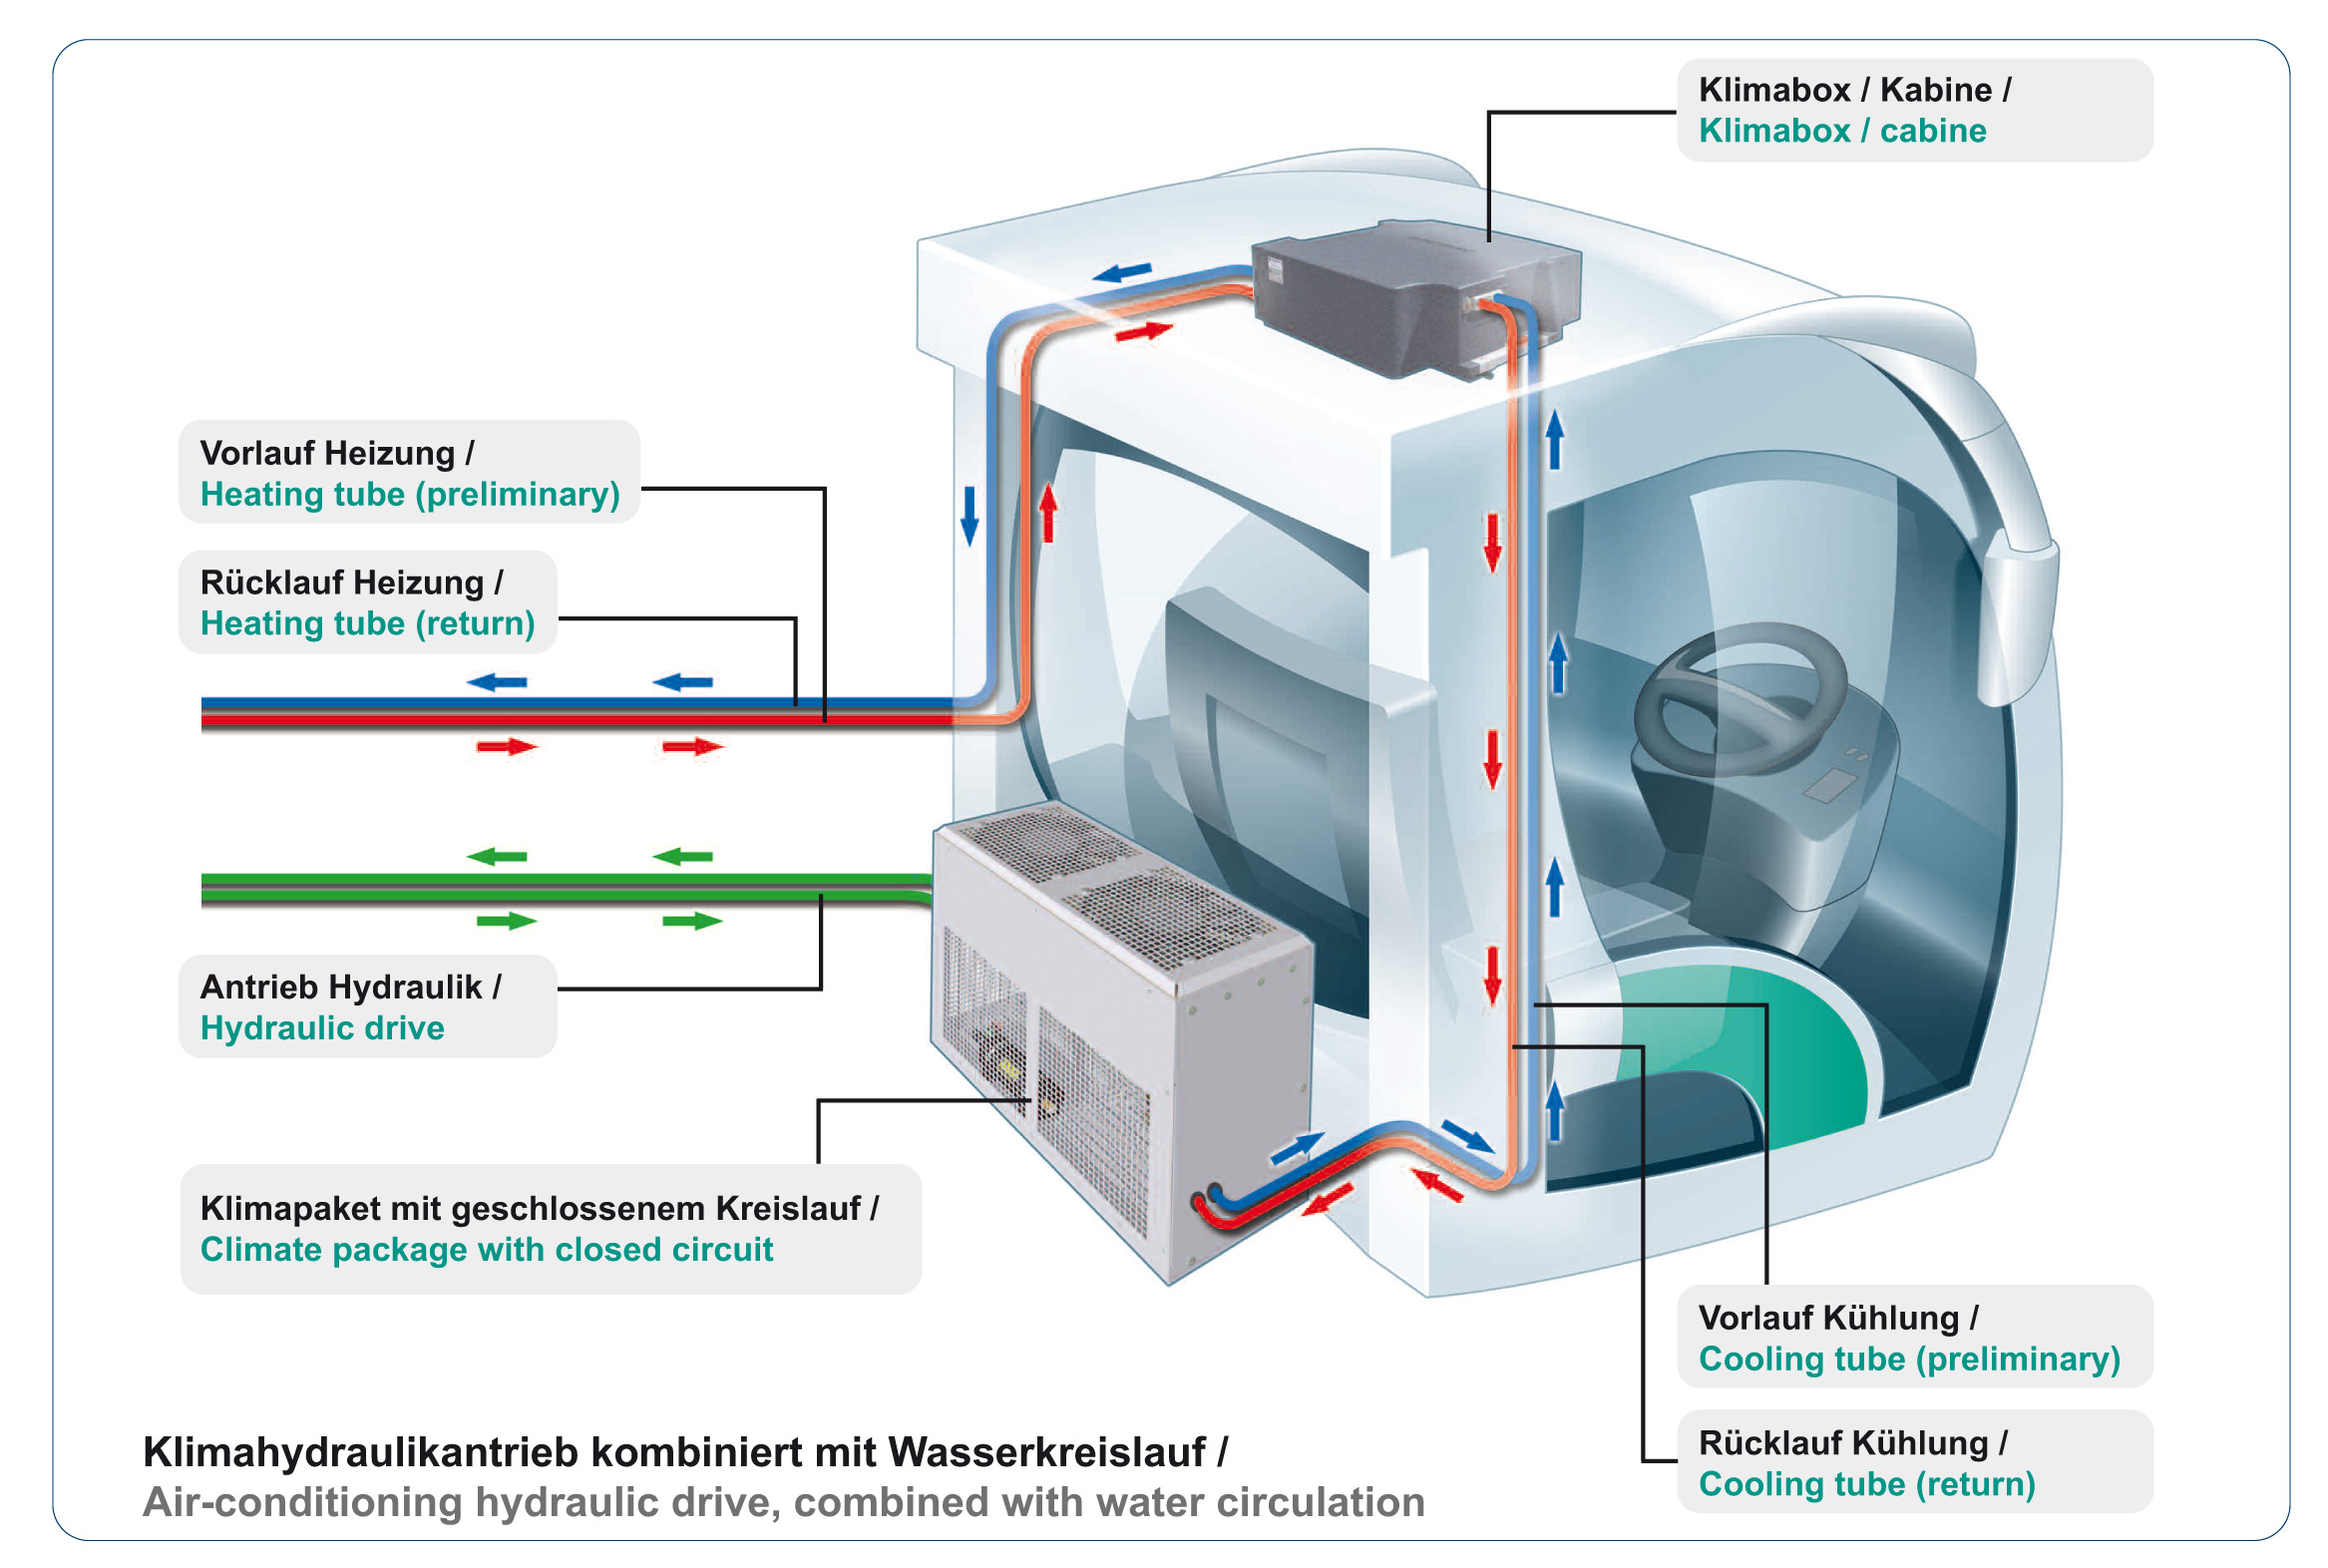 World innovation – Concept idea: air conditioning hydraulic drive  #248D2E